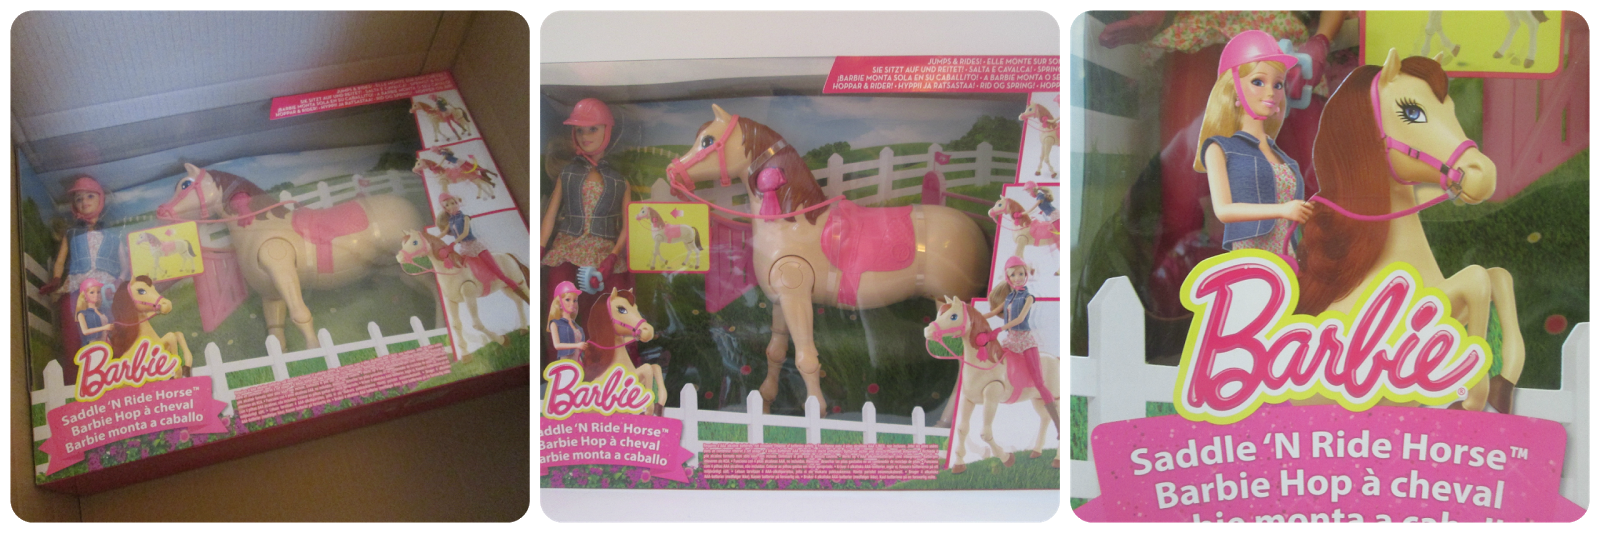 Barbie Saddle 'n Ride Horse and Doll Packaging